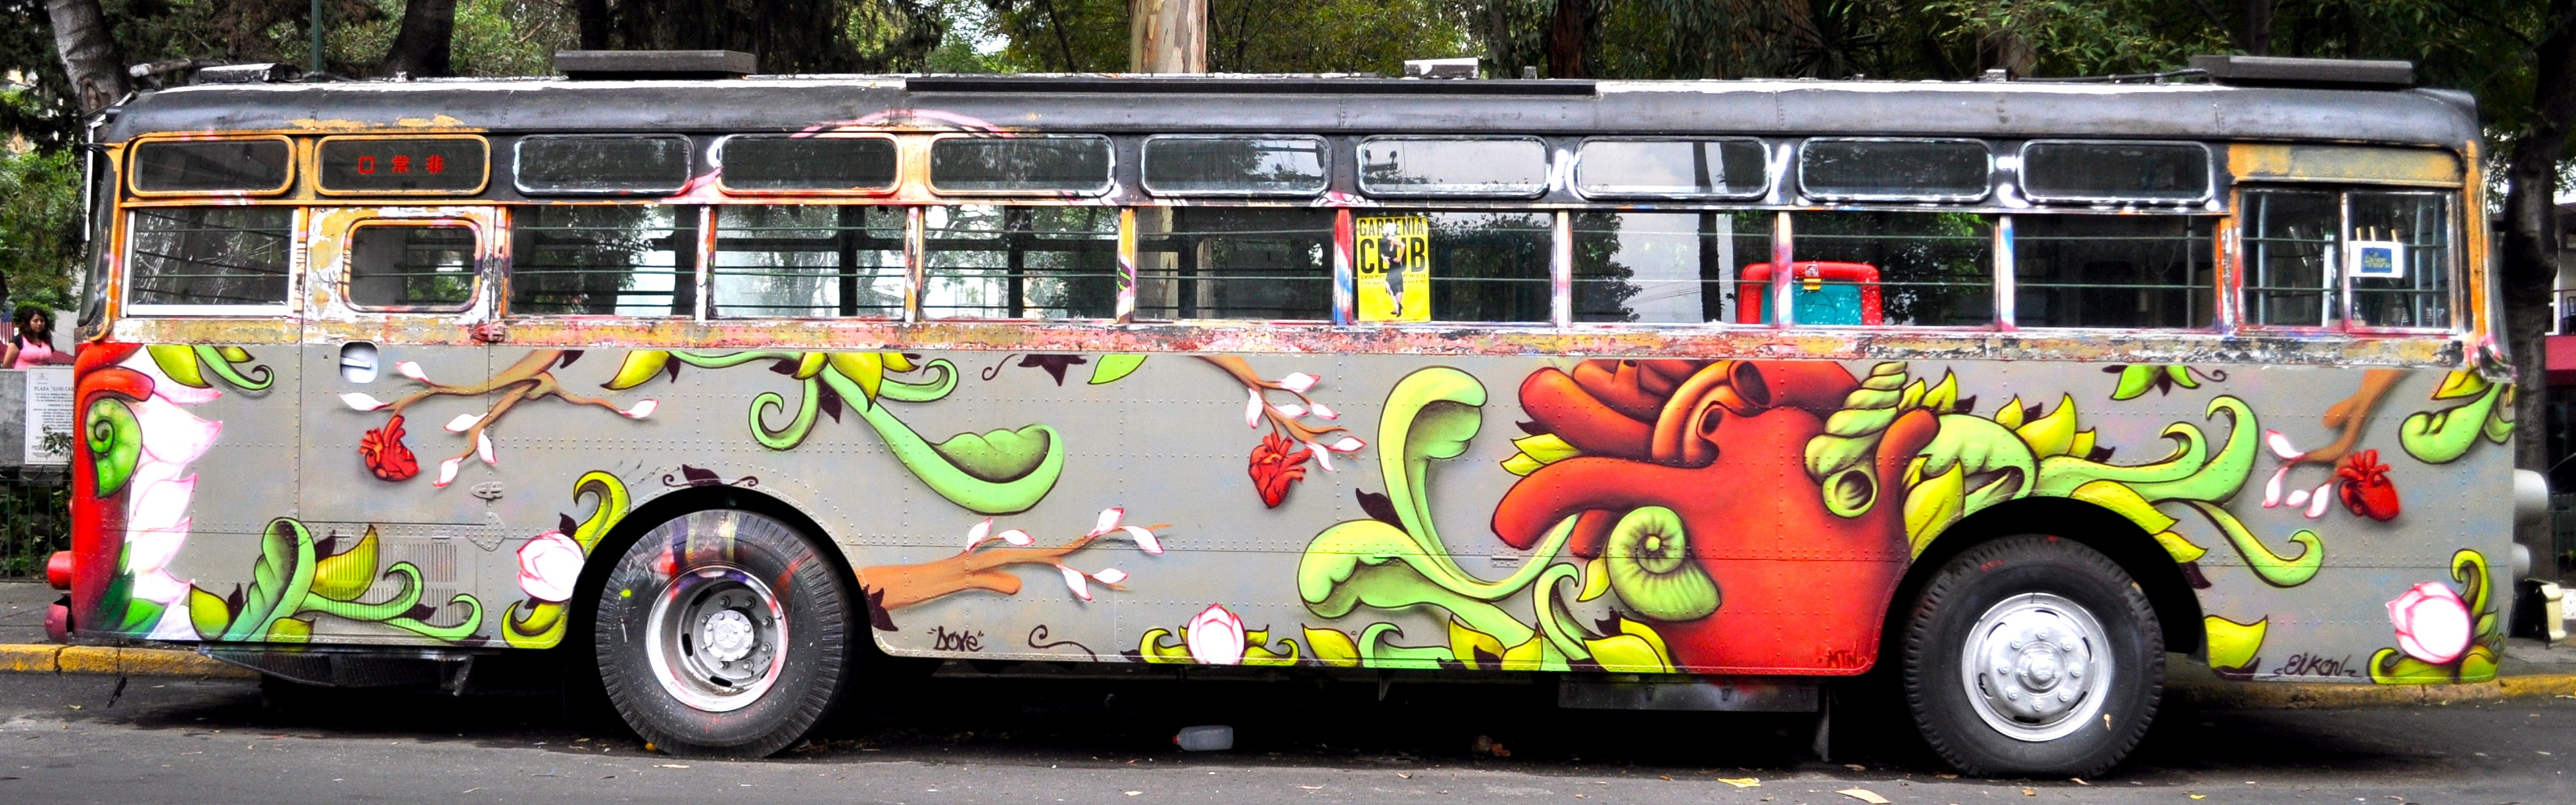 Painted bus in Roma | © katiebordner/Flickr